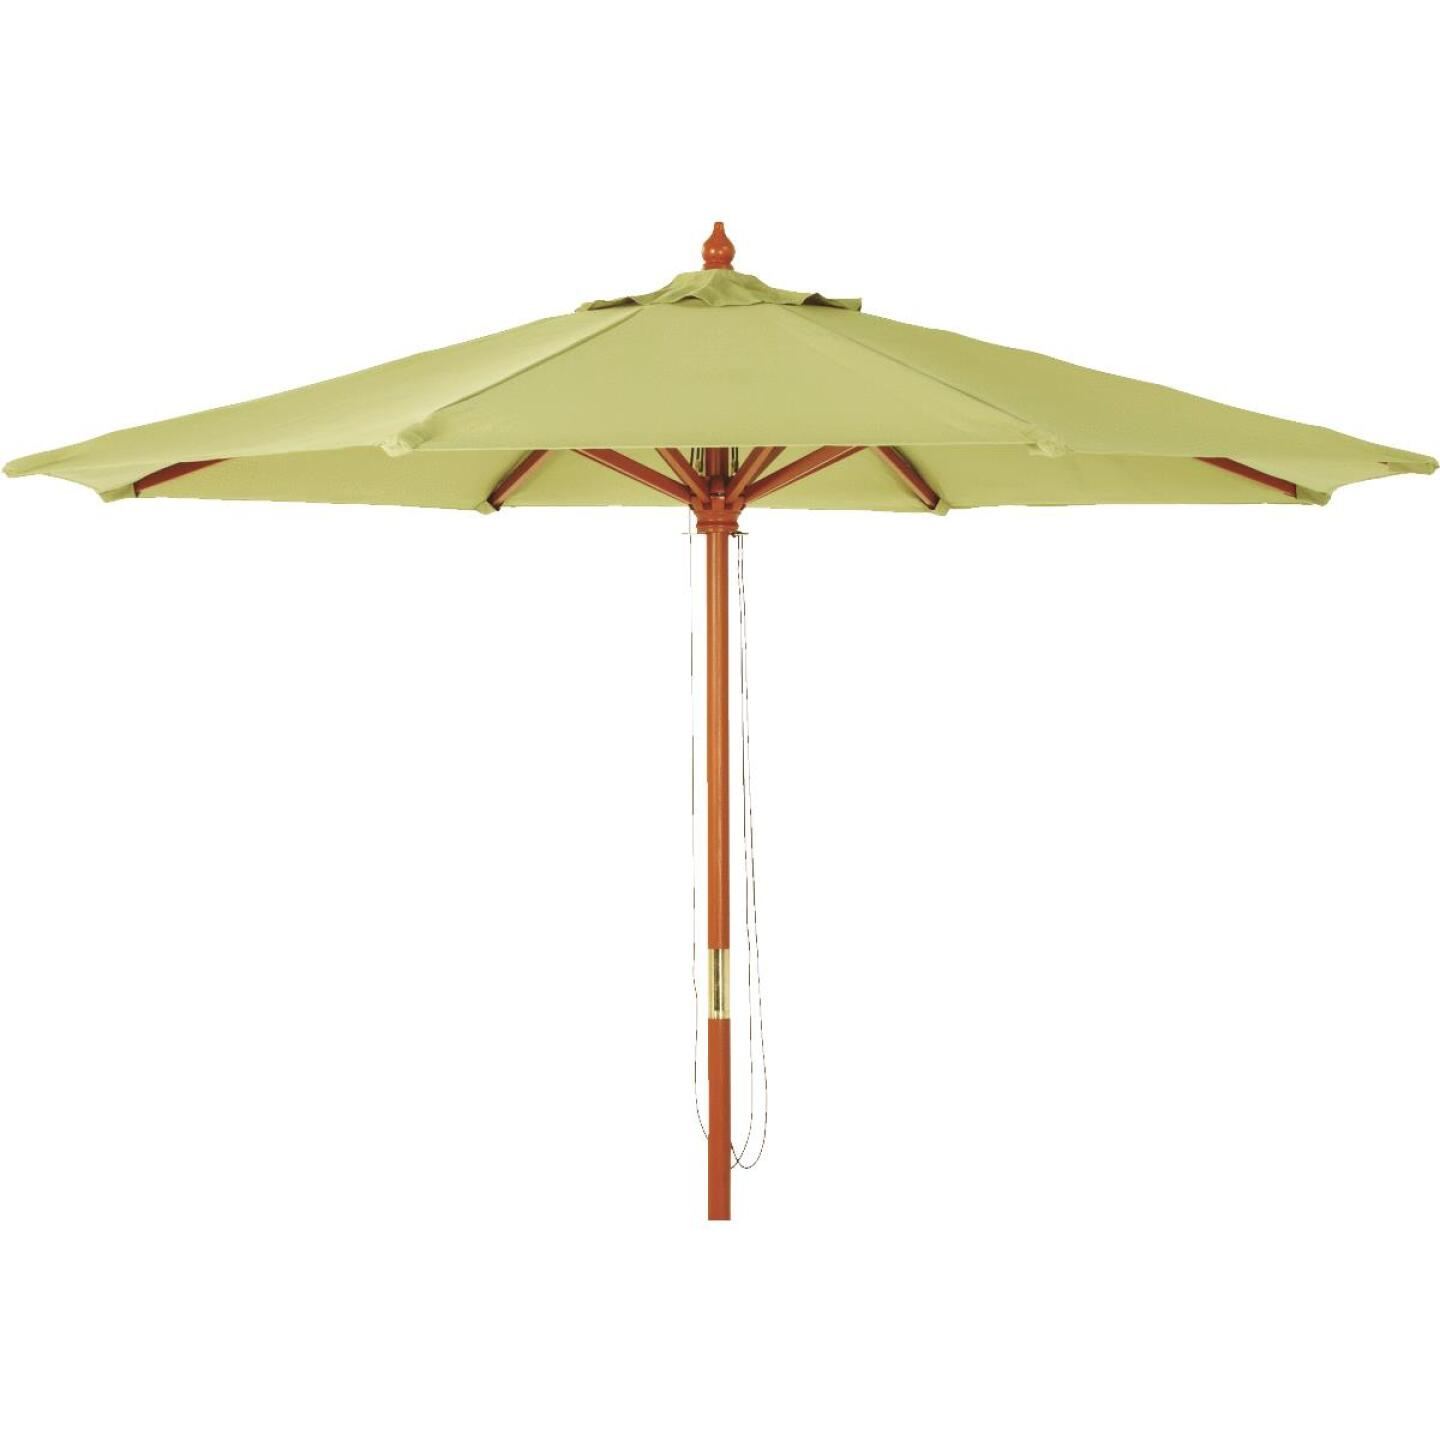 Outdoor Expressions 9 Ft. Pulley Sage Market Patio Umbrella with Brass Plated Hardware Image 1